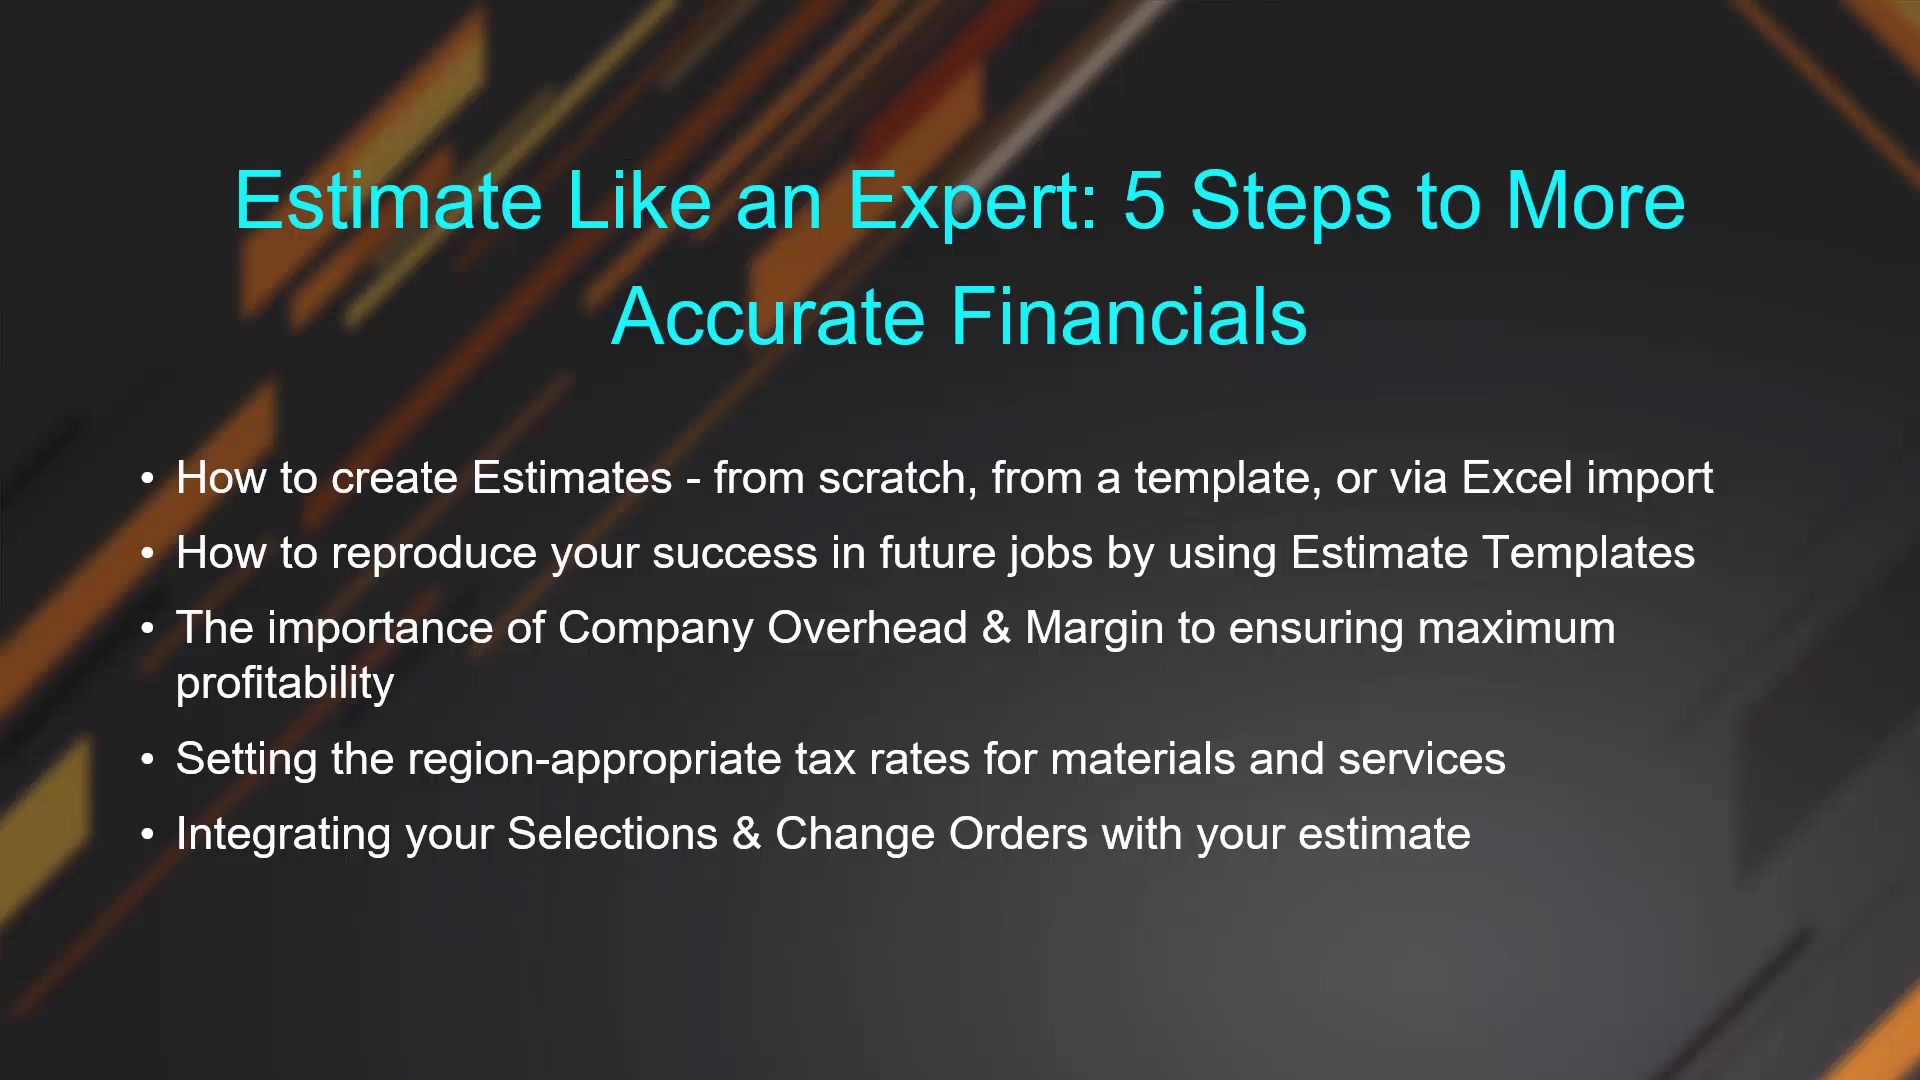 Estimate Like an Expert - 5 Steps to More Accurate Financials_2